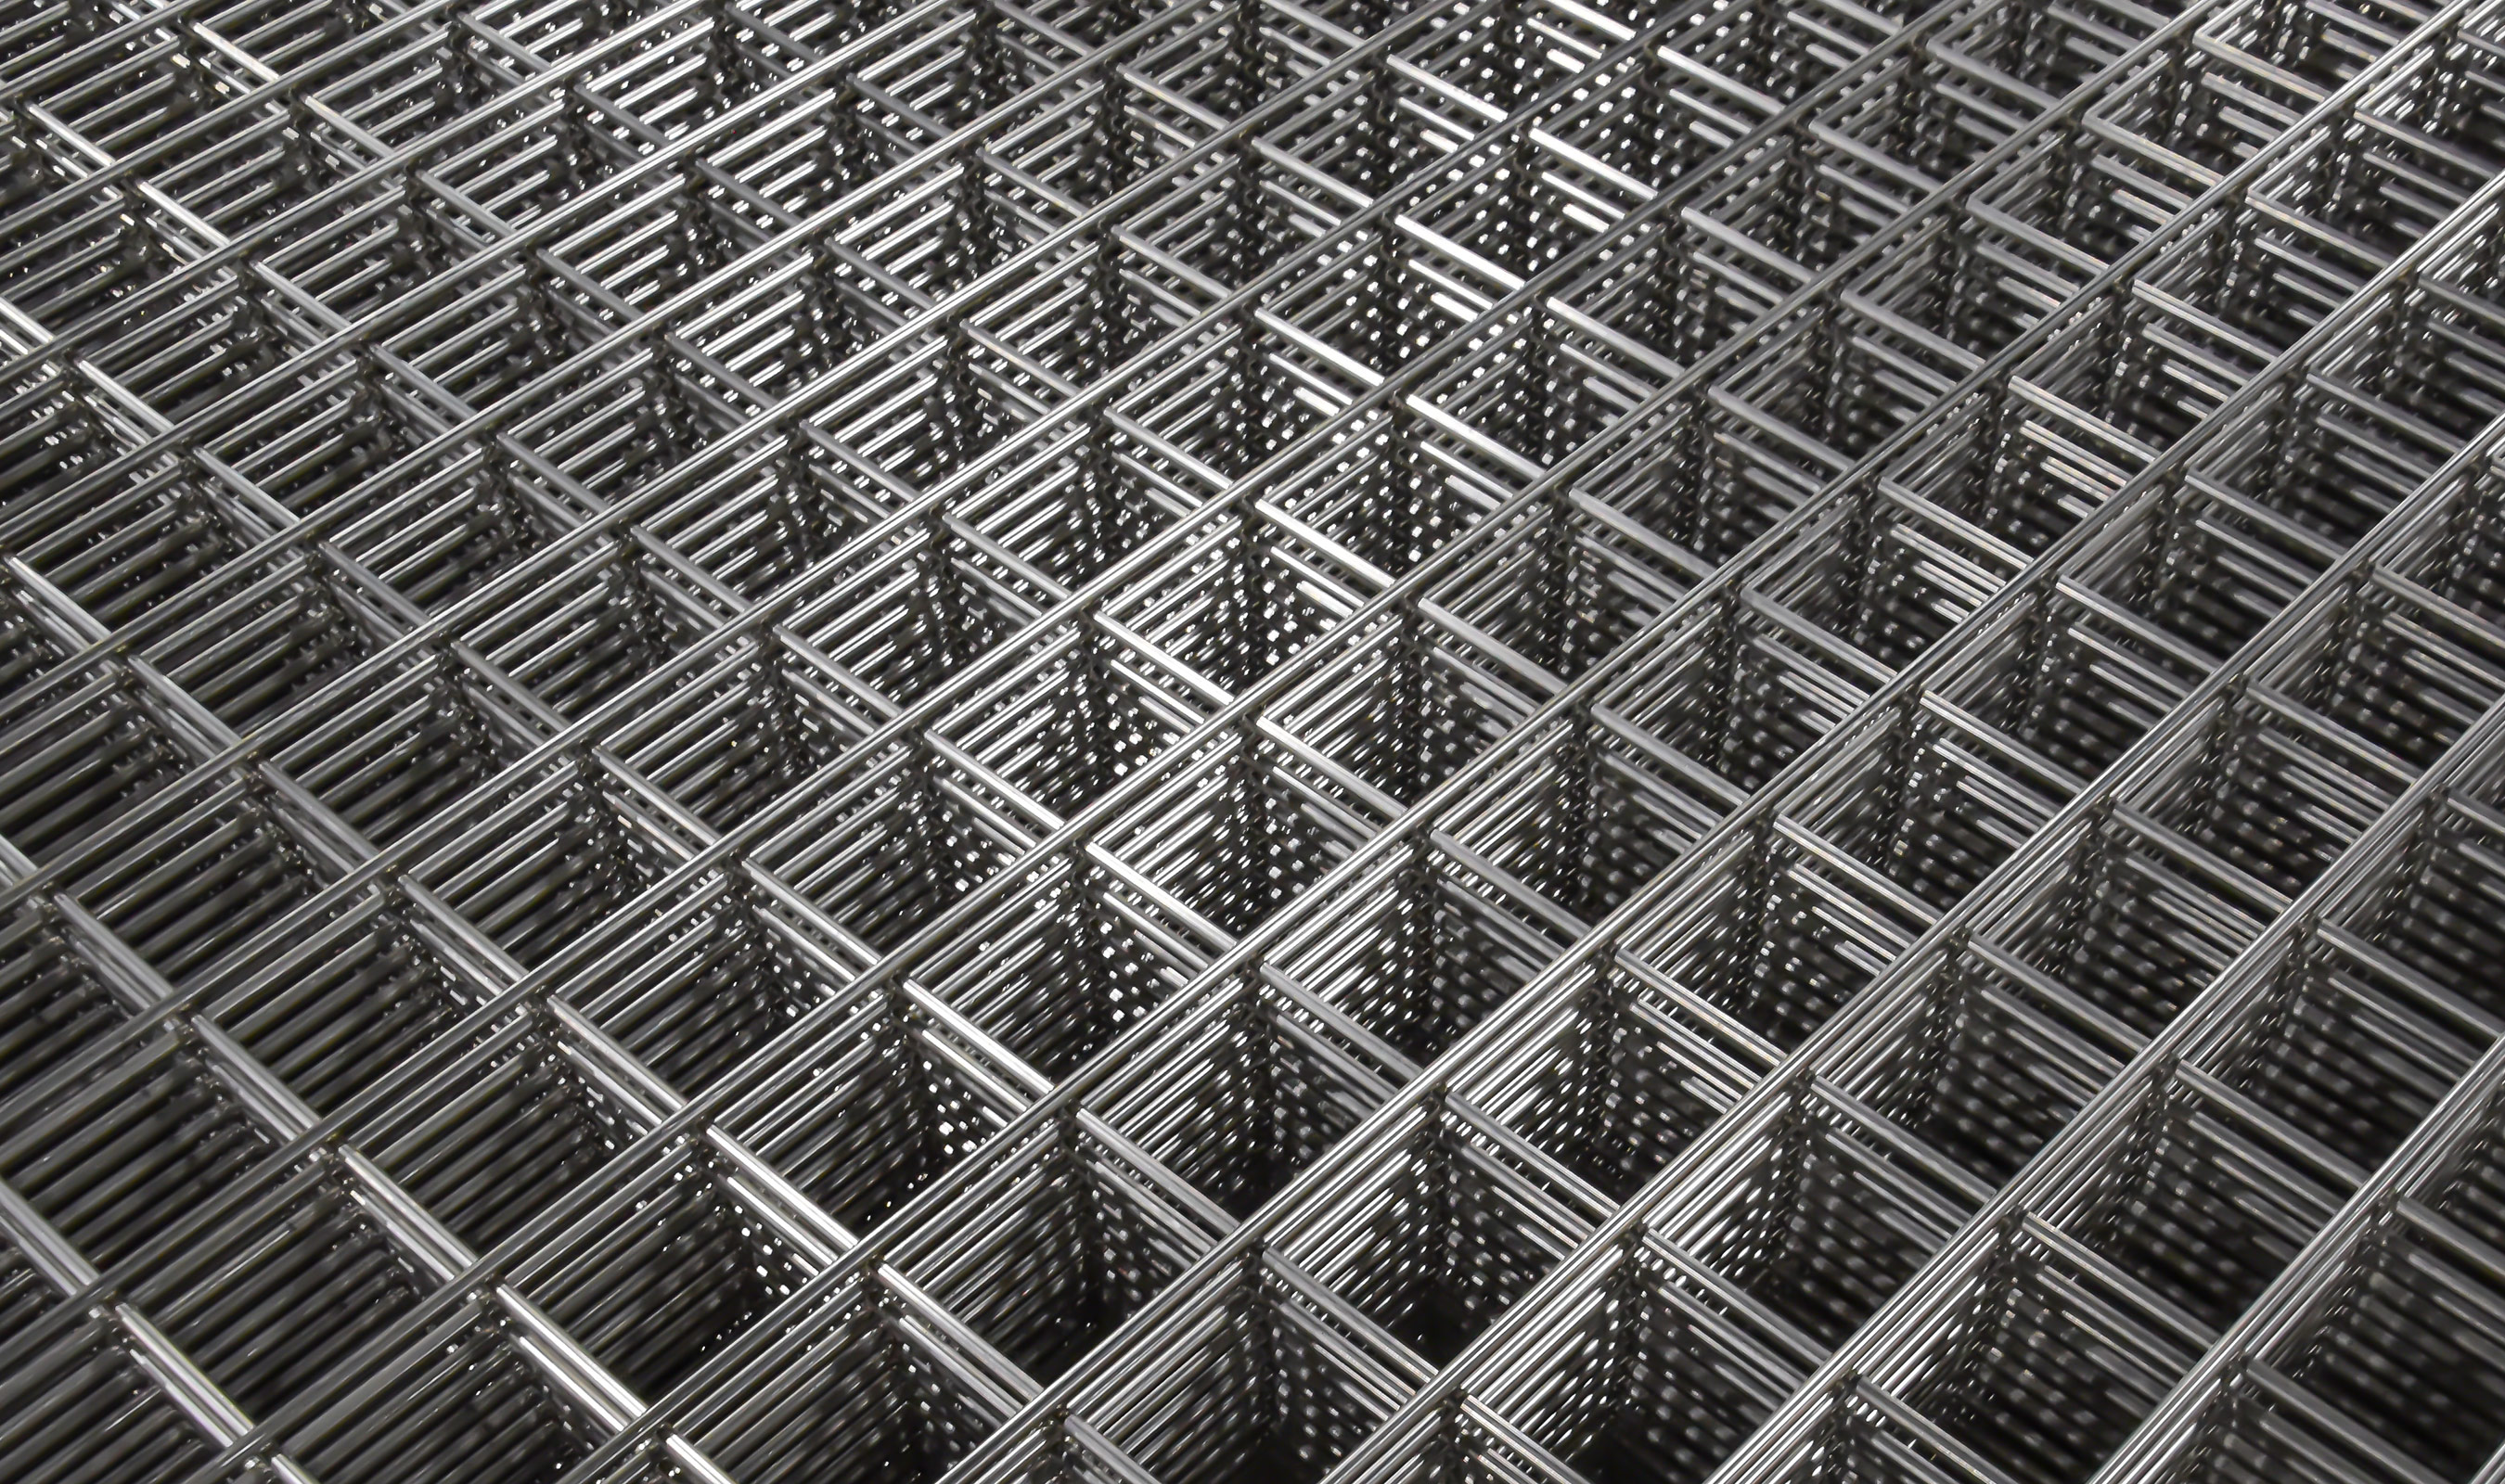 WD-043 Stainless Steel Welded Wire Mesh